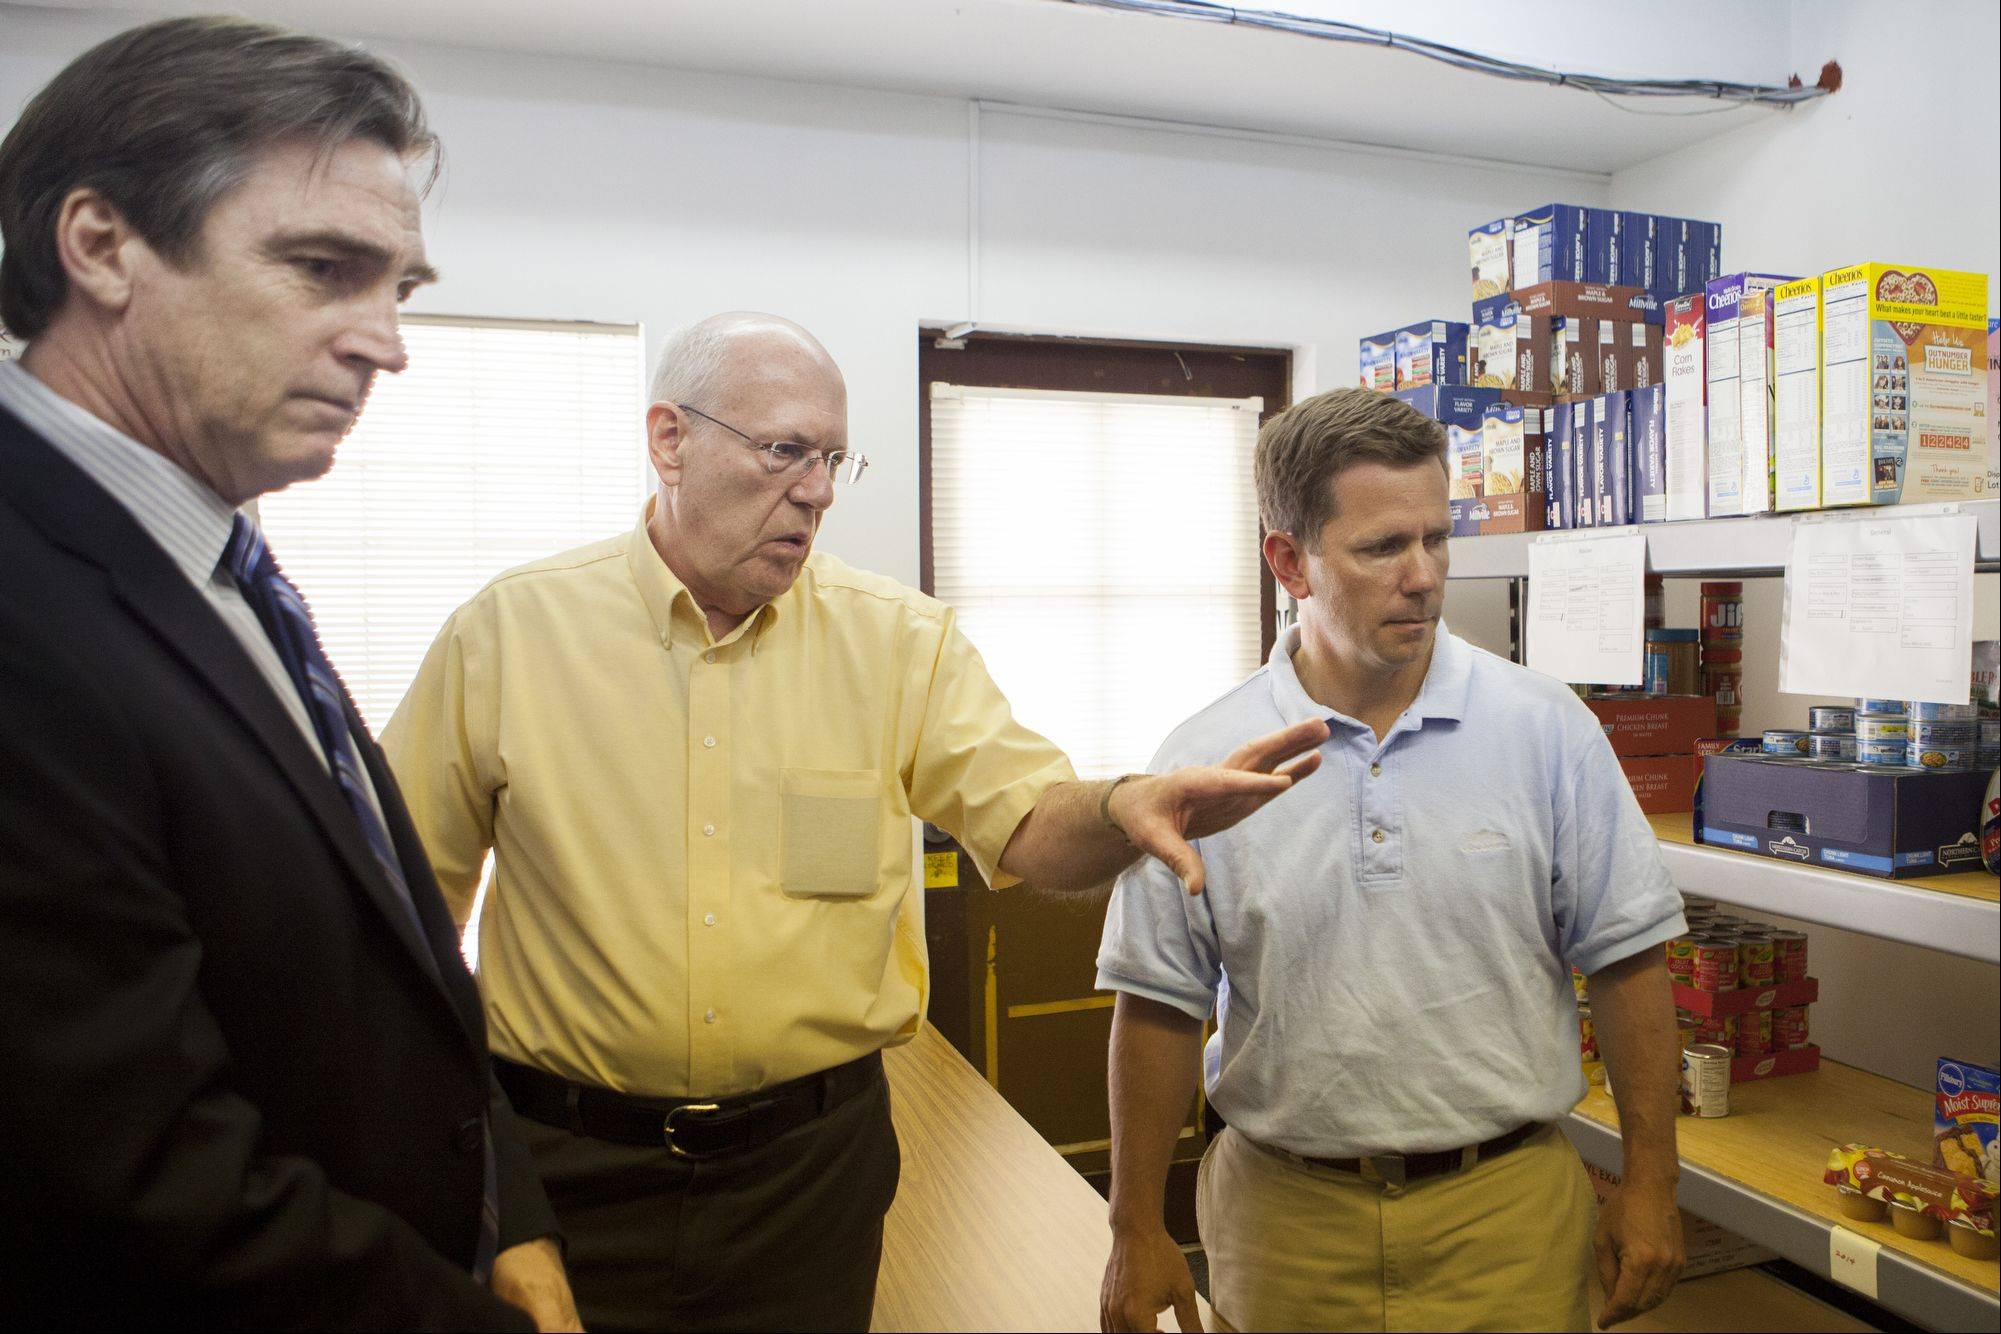 Jim Bradley talks to U.S. Rep Bob Dold and OMNI Youth Services Director Jay Meyer about the food in the Wheeling food pantry.